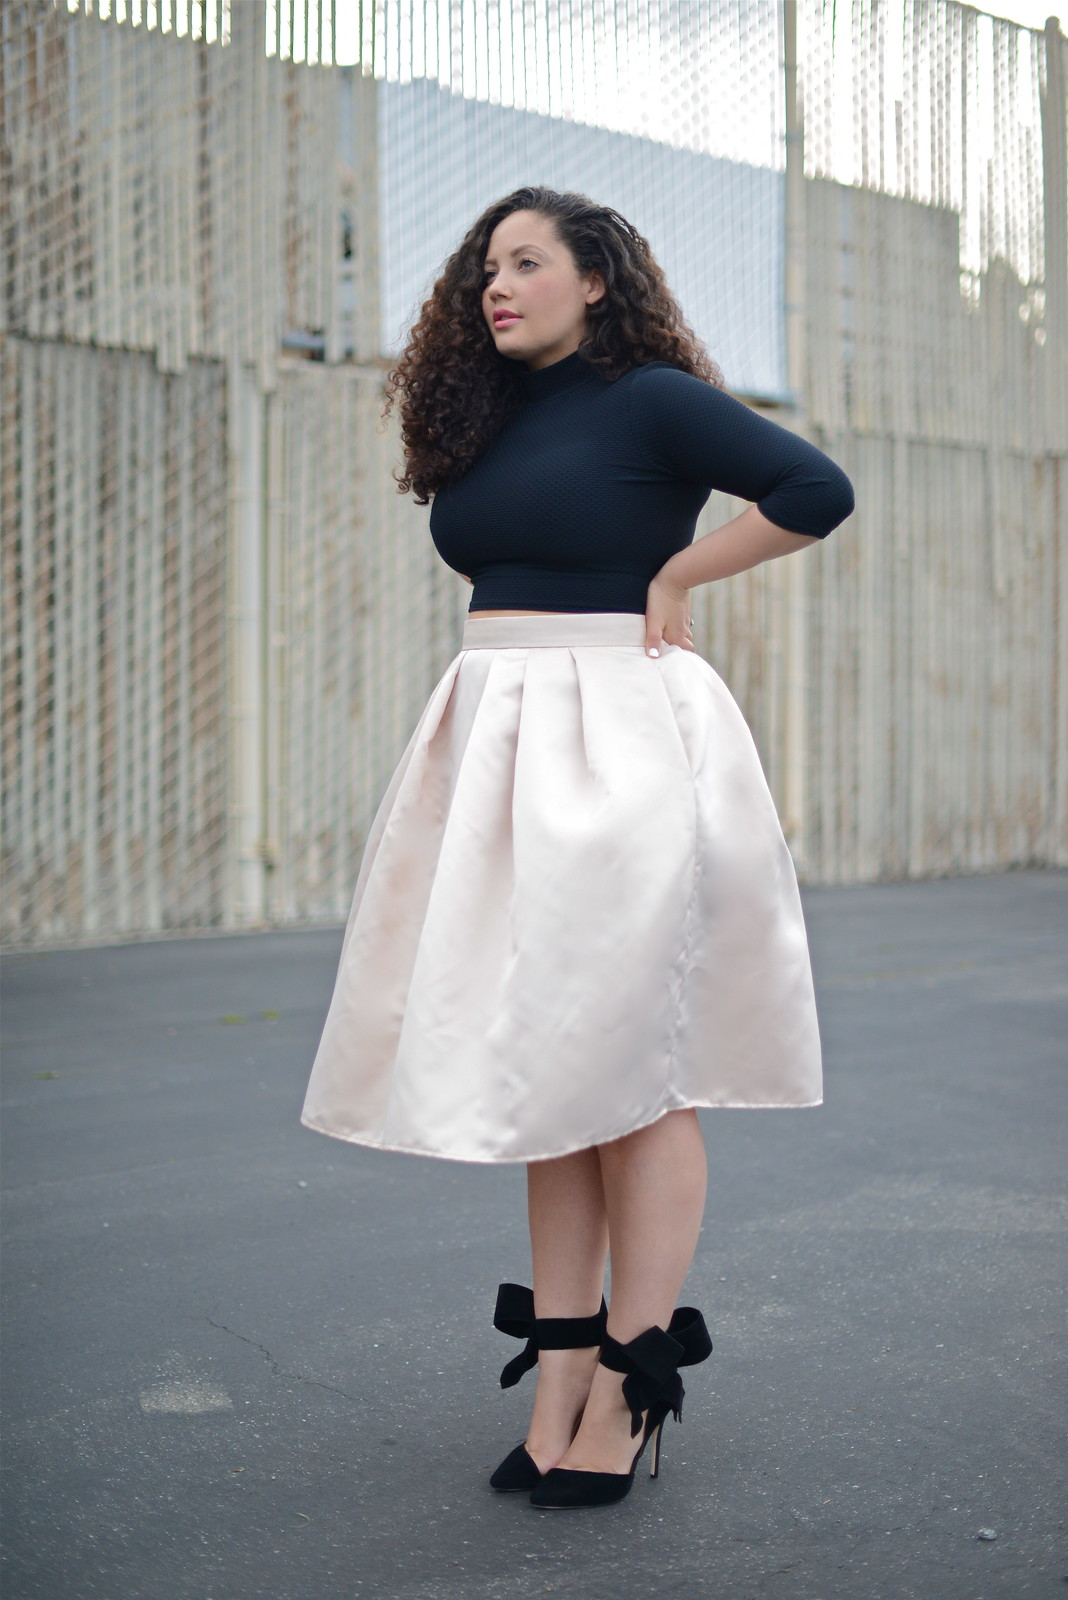 6 Style Blogs For Curvy Girls Her Campus